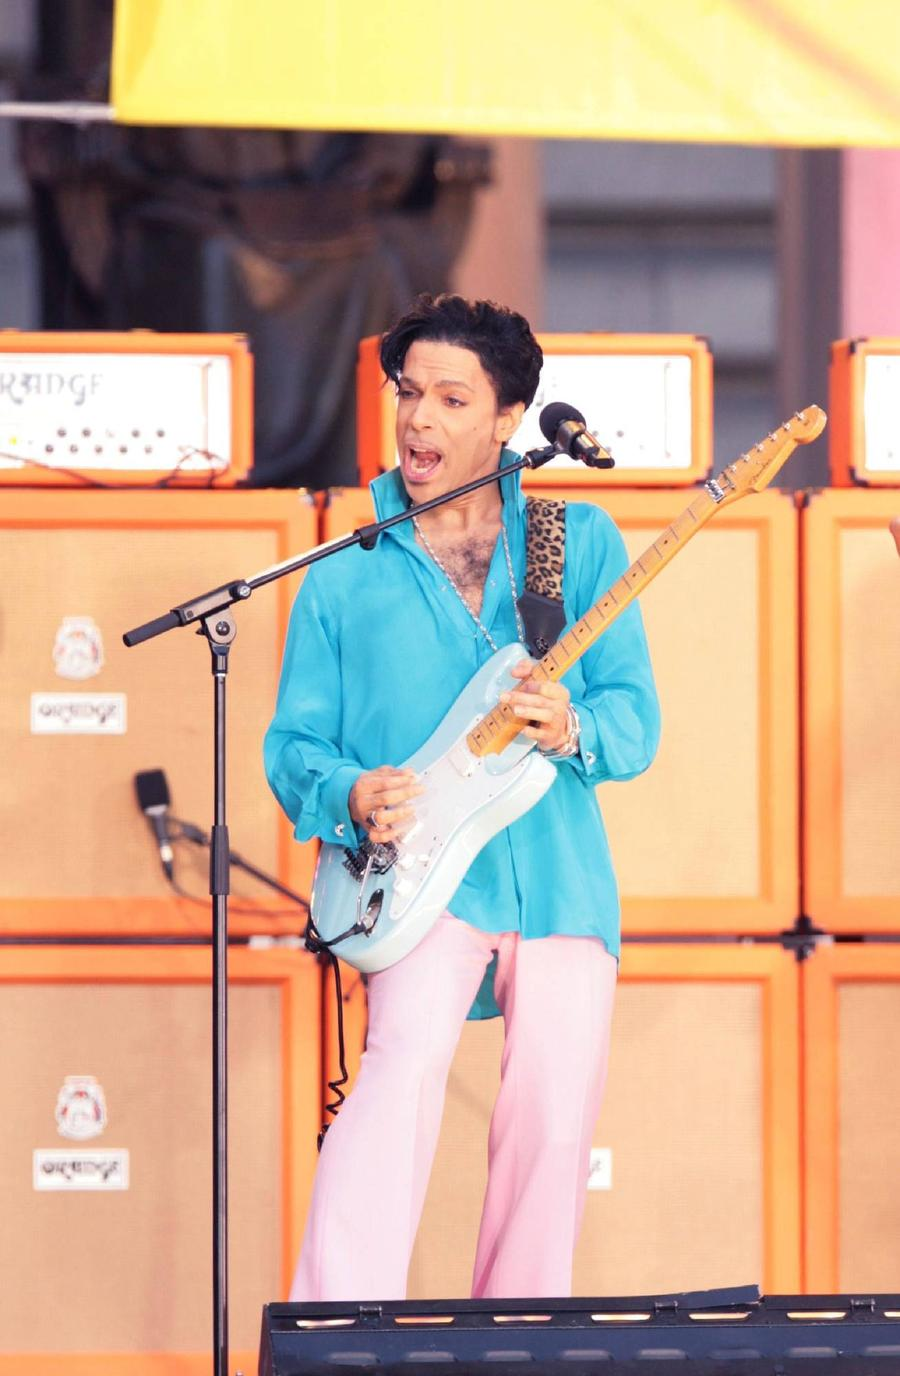 Rare Prince Signature Up For Auction